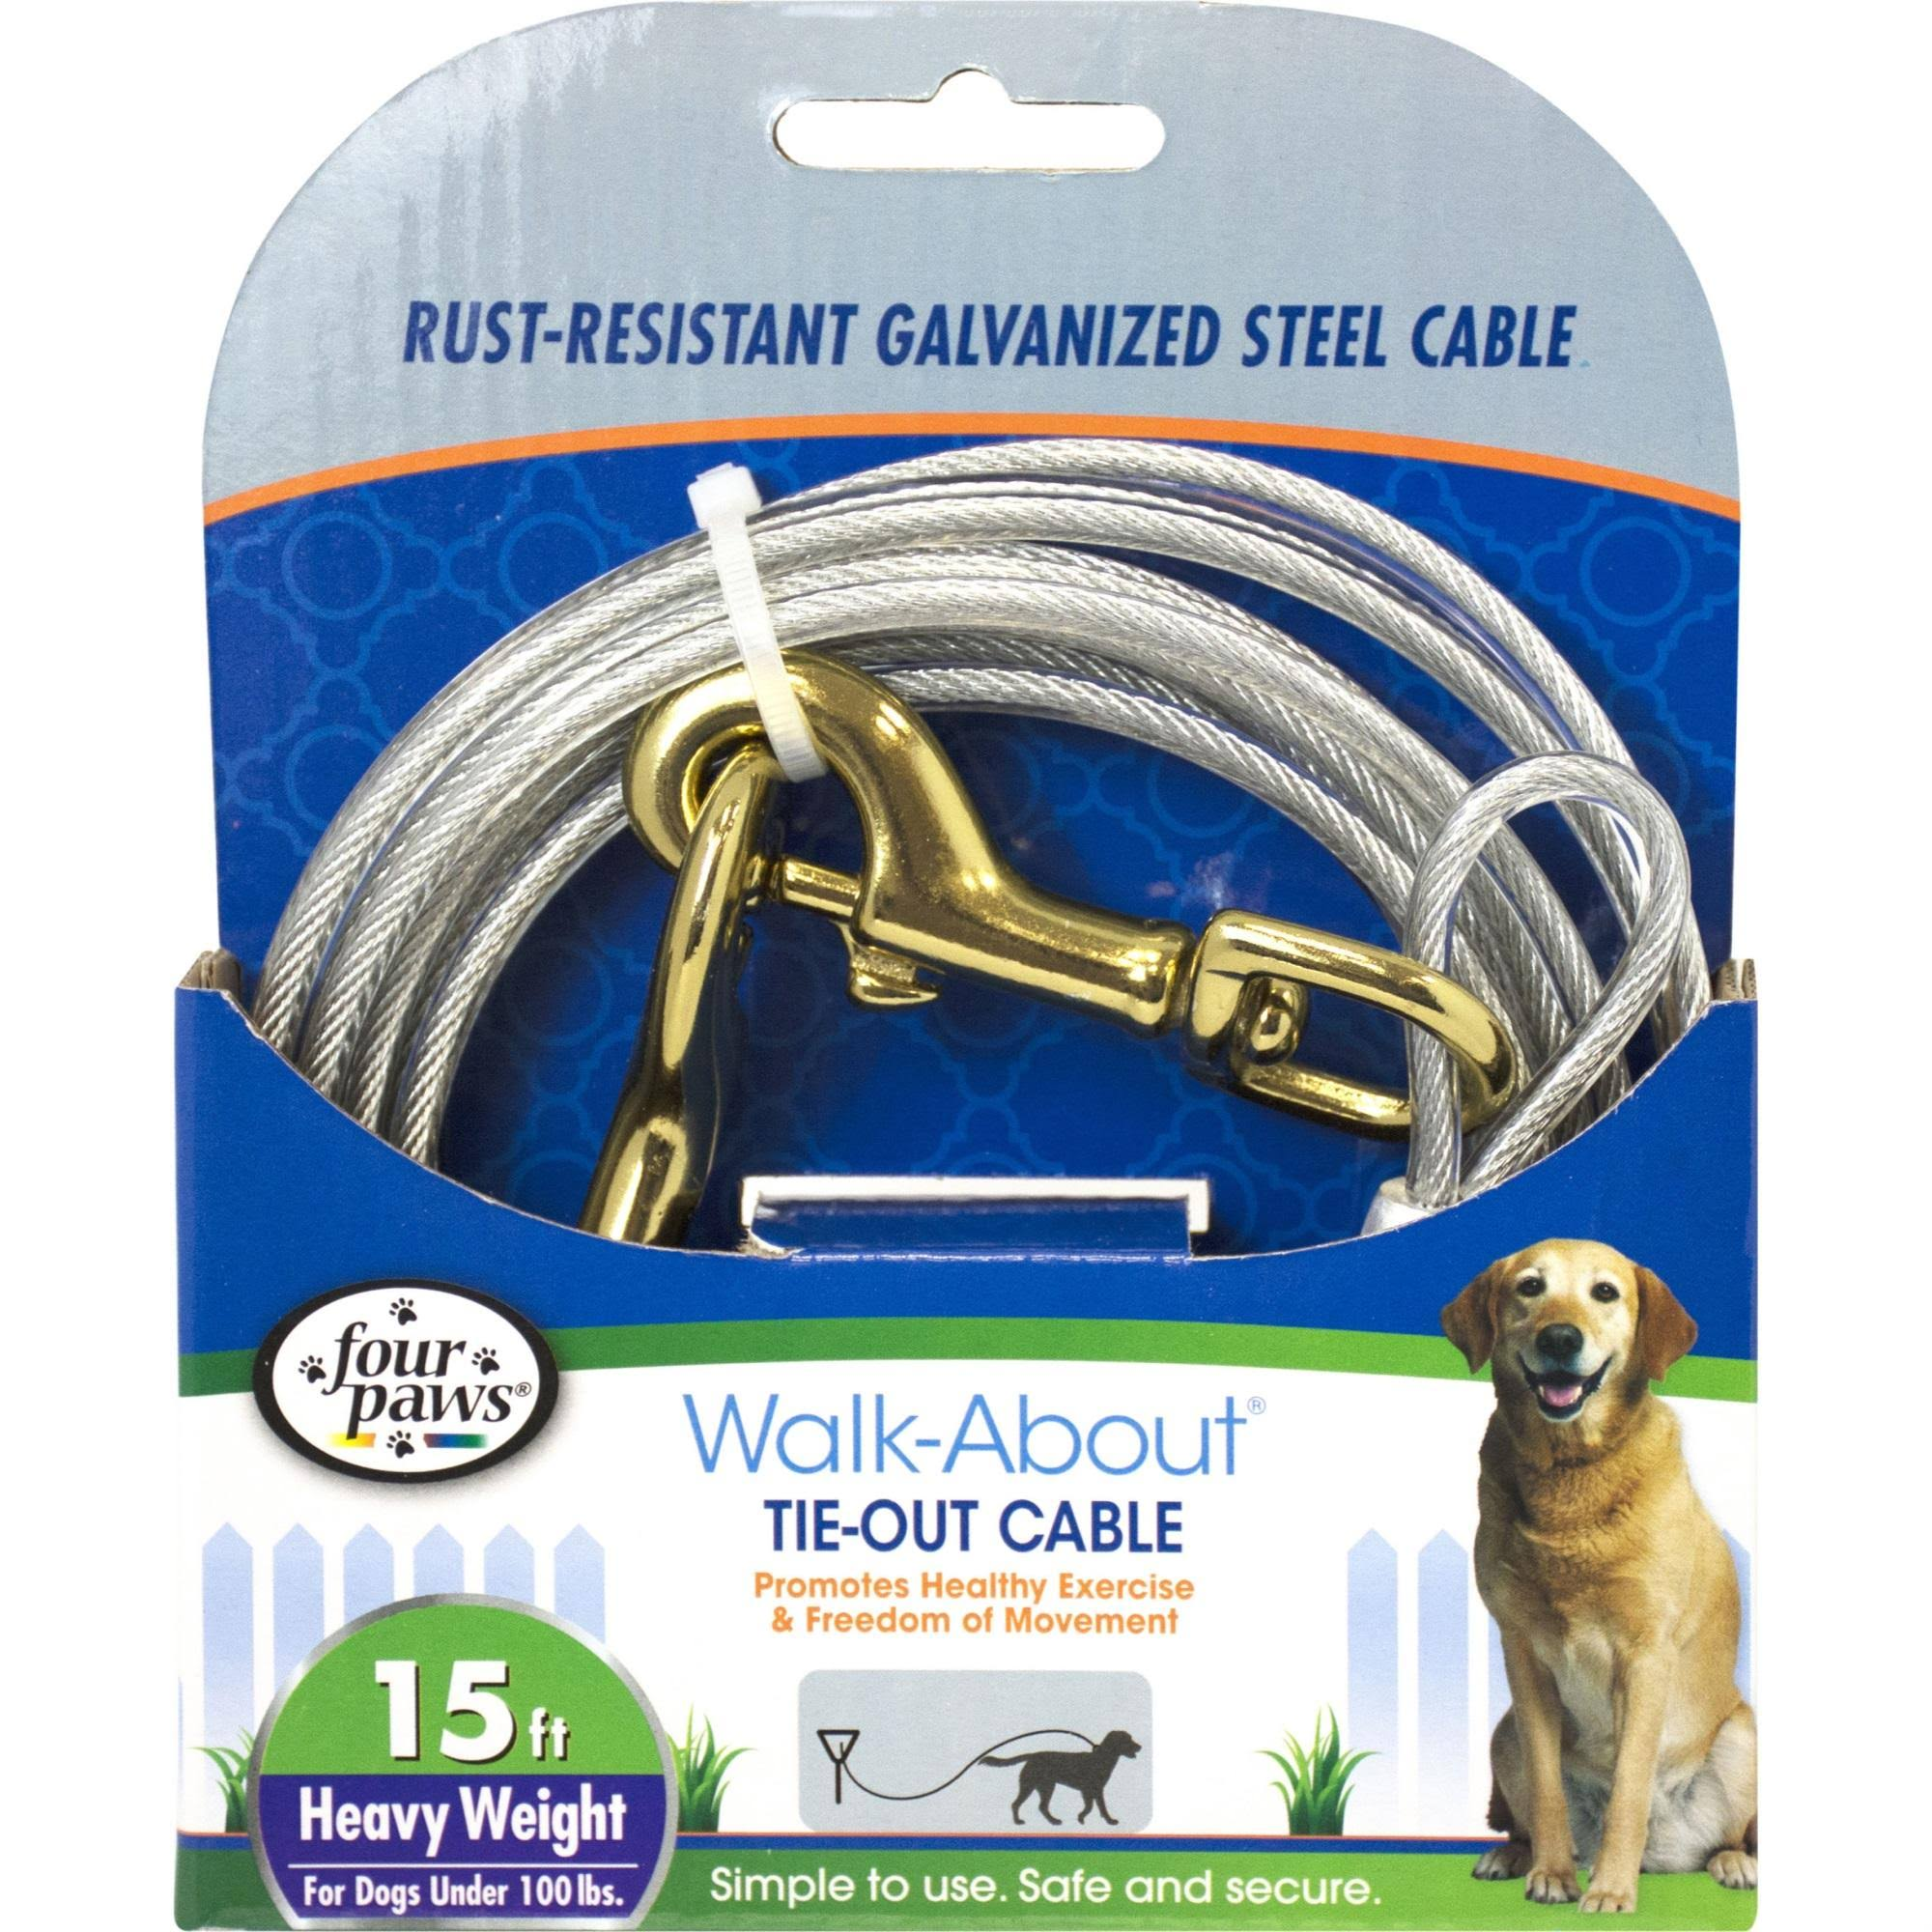 Four Paws Dog Tie-Out Cable - Bronze Snaps, 15 Feet